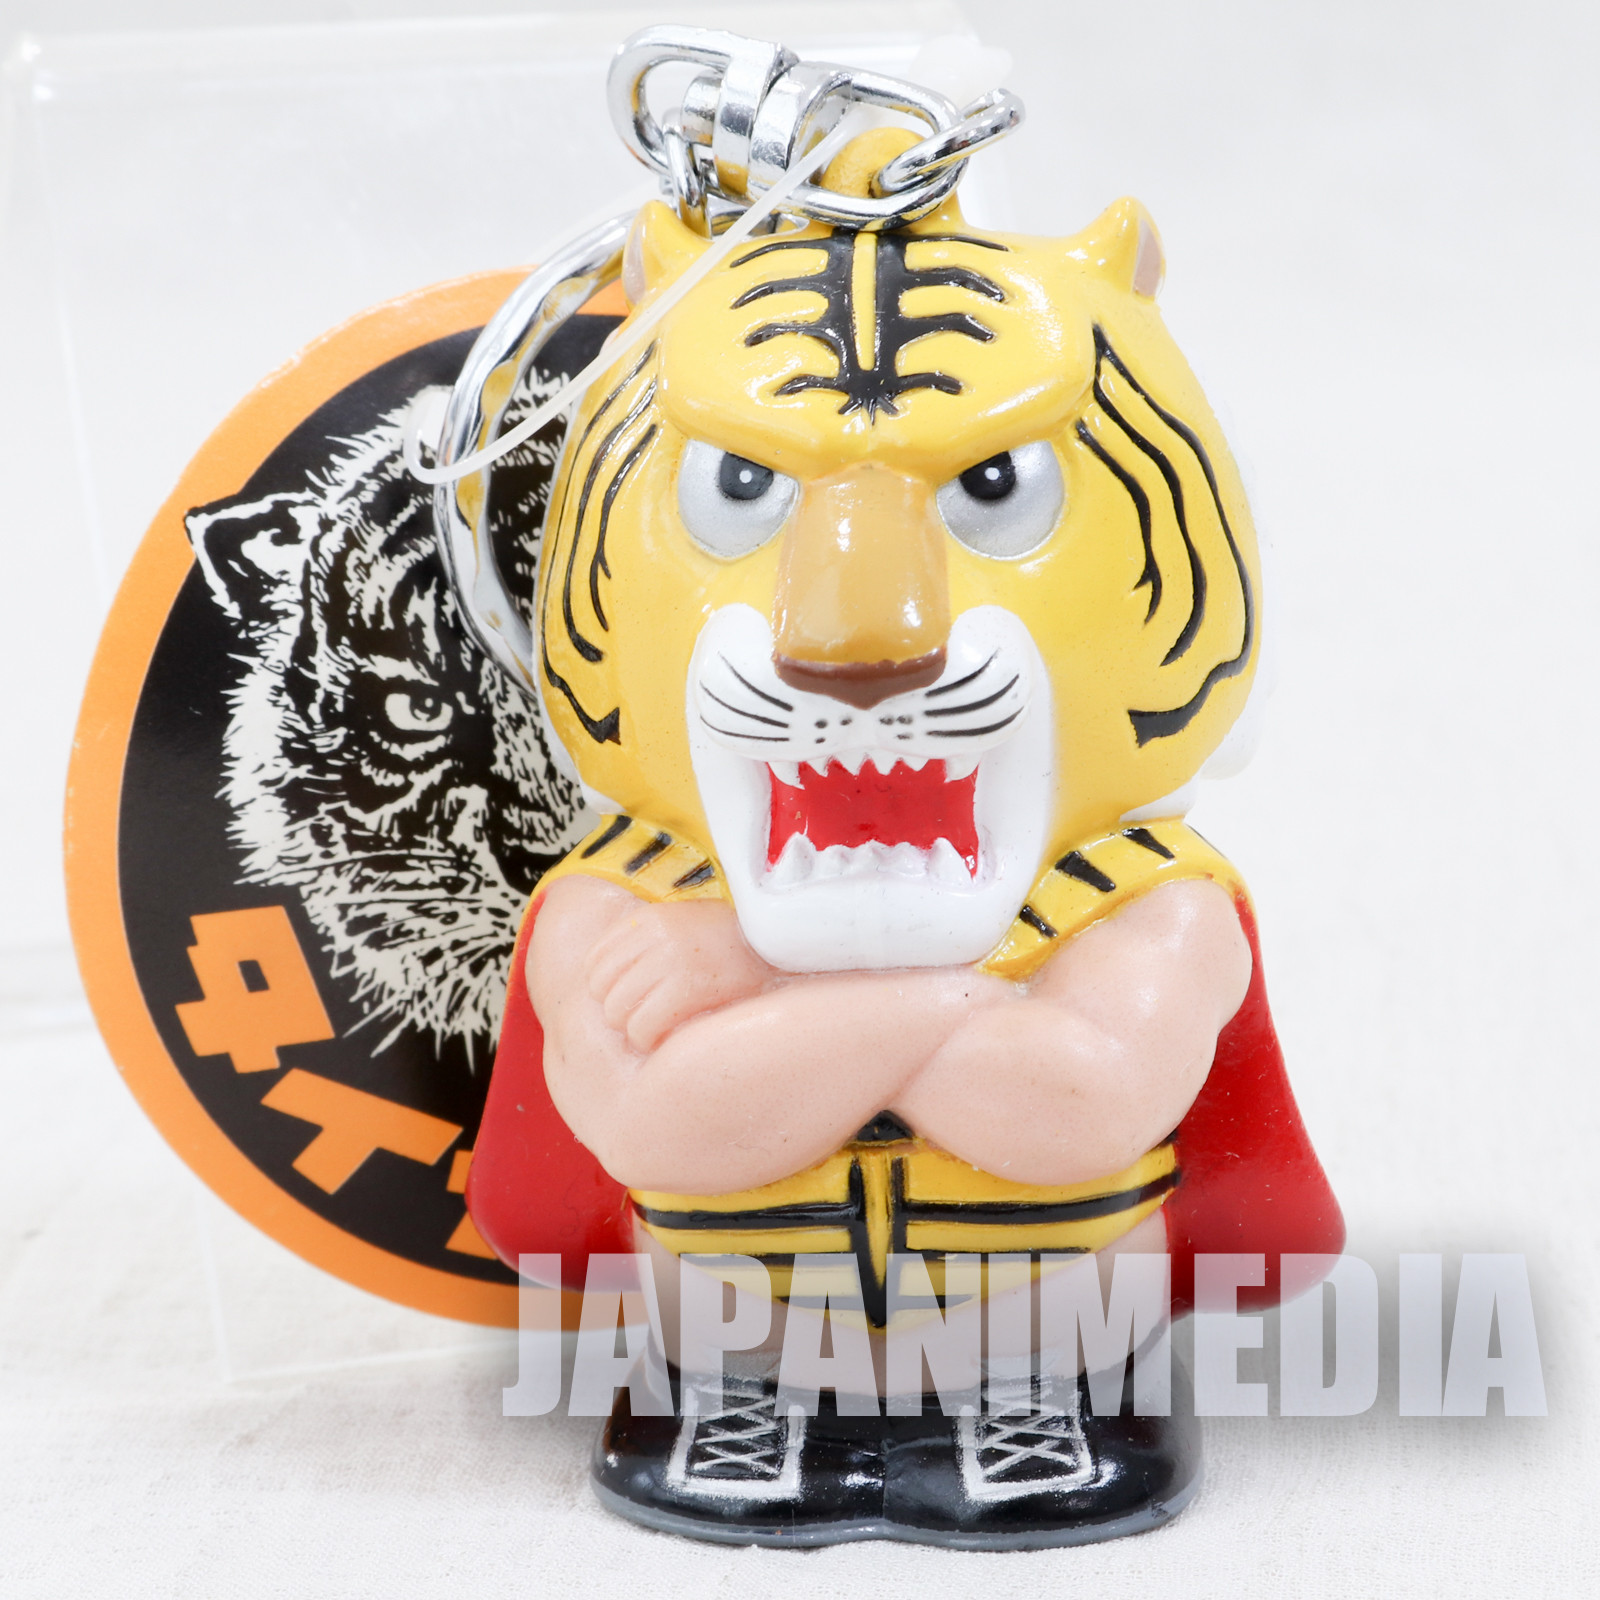 Tiger Mask Mascot Figure Key Chain JAPAN ANIME MANGA Pro Wrestling